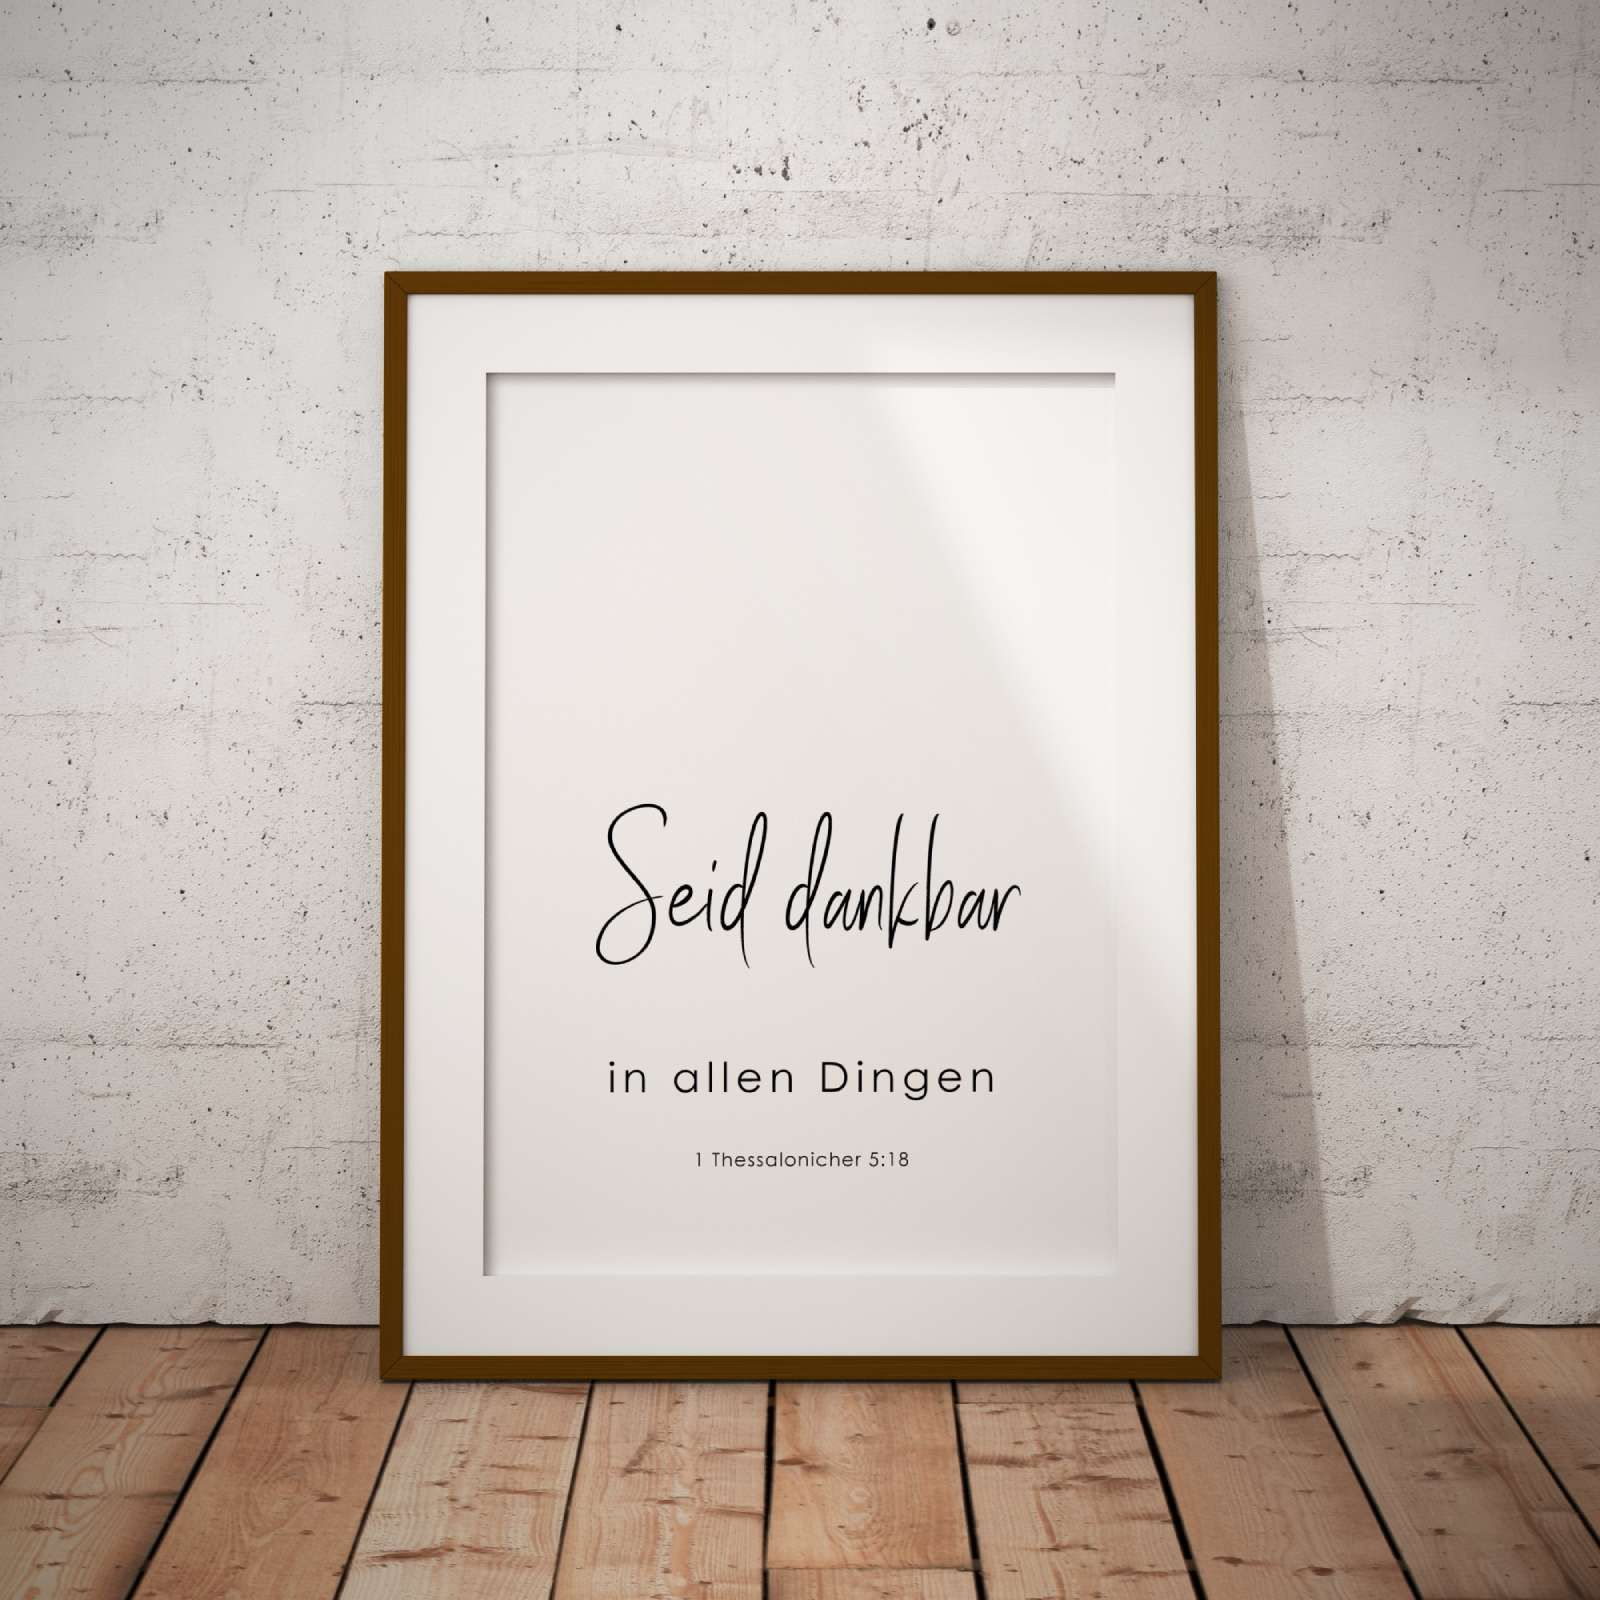 This printable art is available in my shop now!   #scriptureprintable #christianquote #christianprintable, #christiandecor #christianhomedecor #baptismgift #bibleverseposter #posters #posterdesign #designposter #typographicposter #luxuryhome #newhomes #luxuryproperty #luxurymansion #decor #instadecor #decorations #decorator #decorationideas #lovedecor #interiorart #artdecor #decoradores #instadecoration #bibelverse #bibleverseart #thanksgiving #germandecor #christianart #seiddankbar